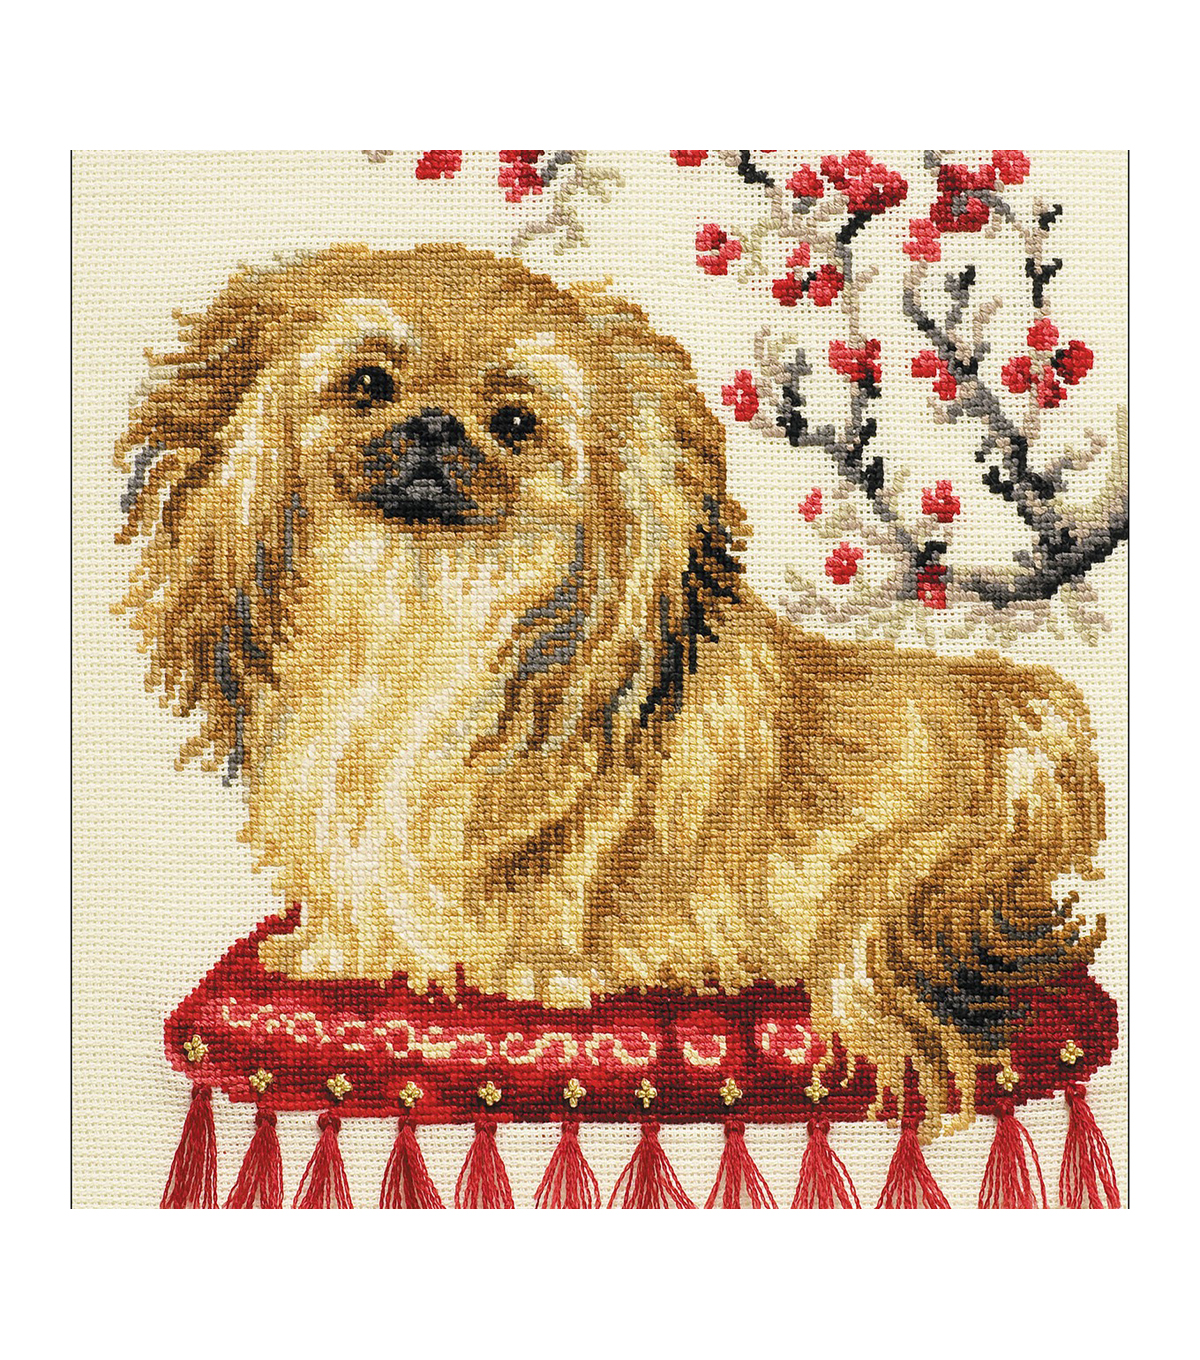 RIOLIS 9.75\u0027\u0027x9.75\u0027\u0027 15-count Counted Cross Stitch Kit-Pekinese